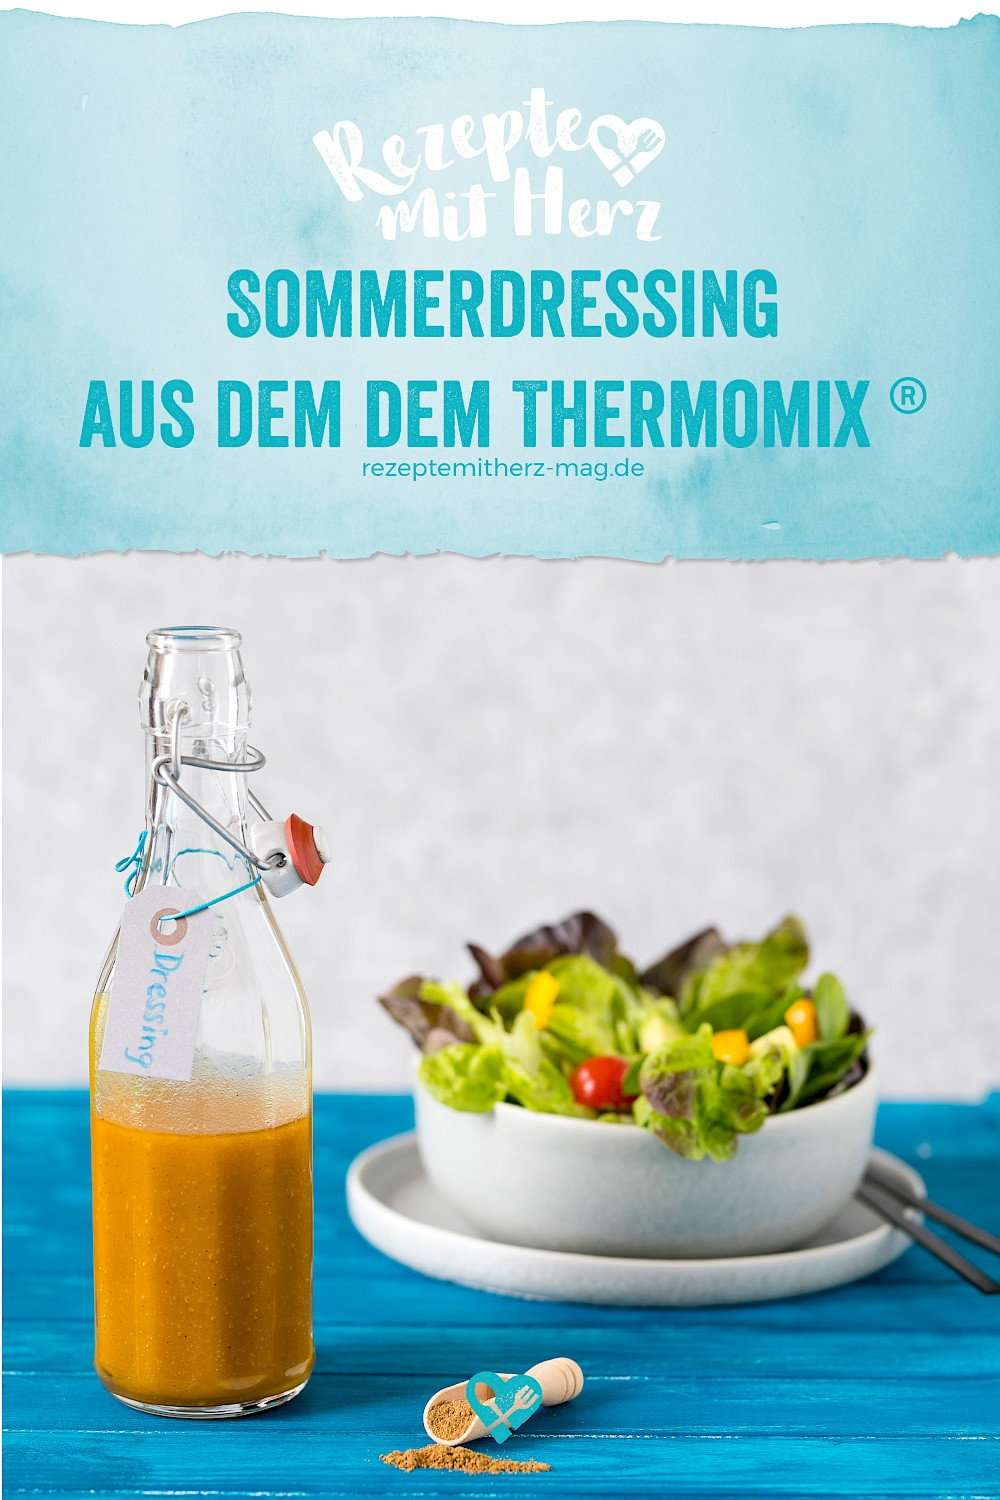 Sommerdressing aus dem Thermomix®